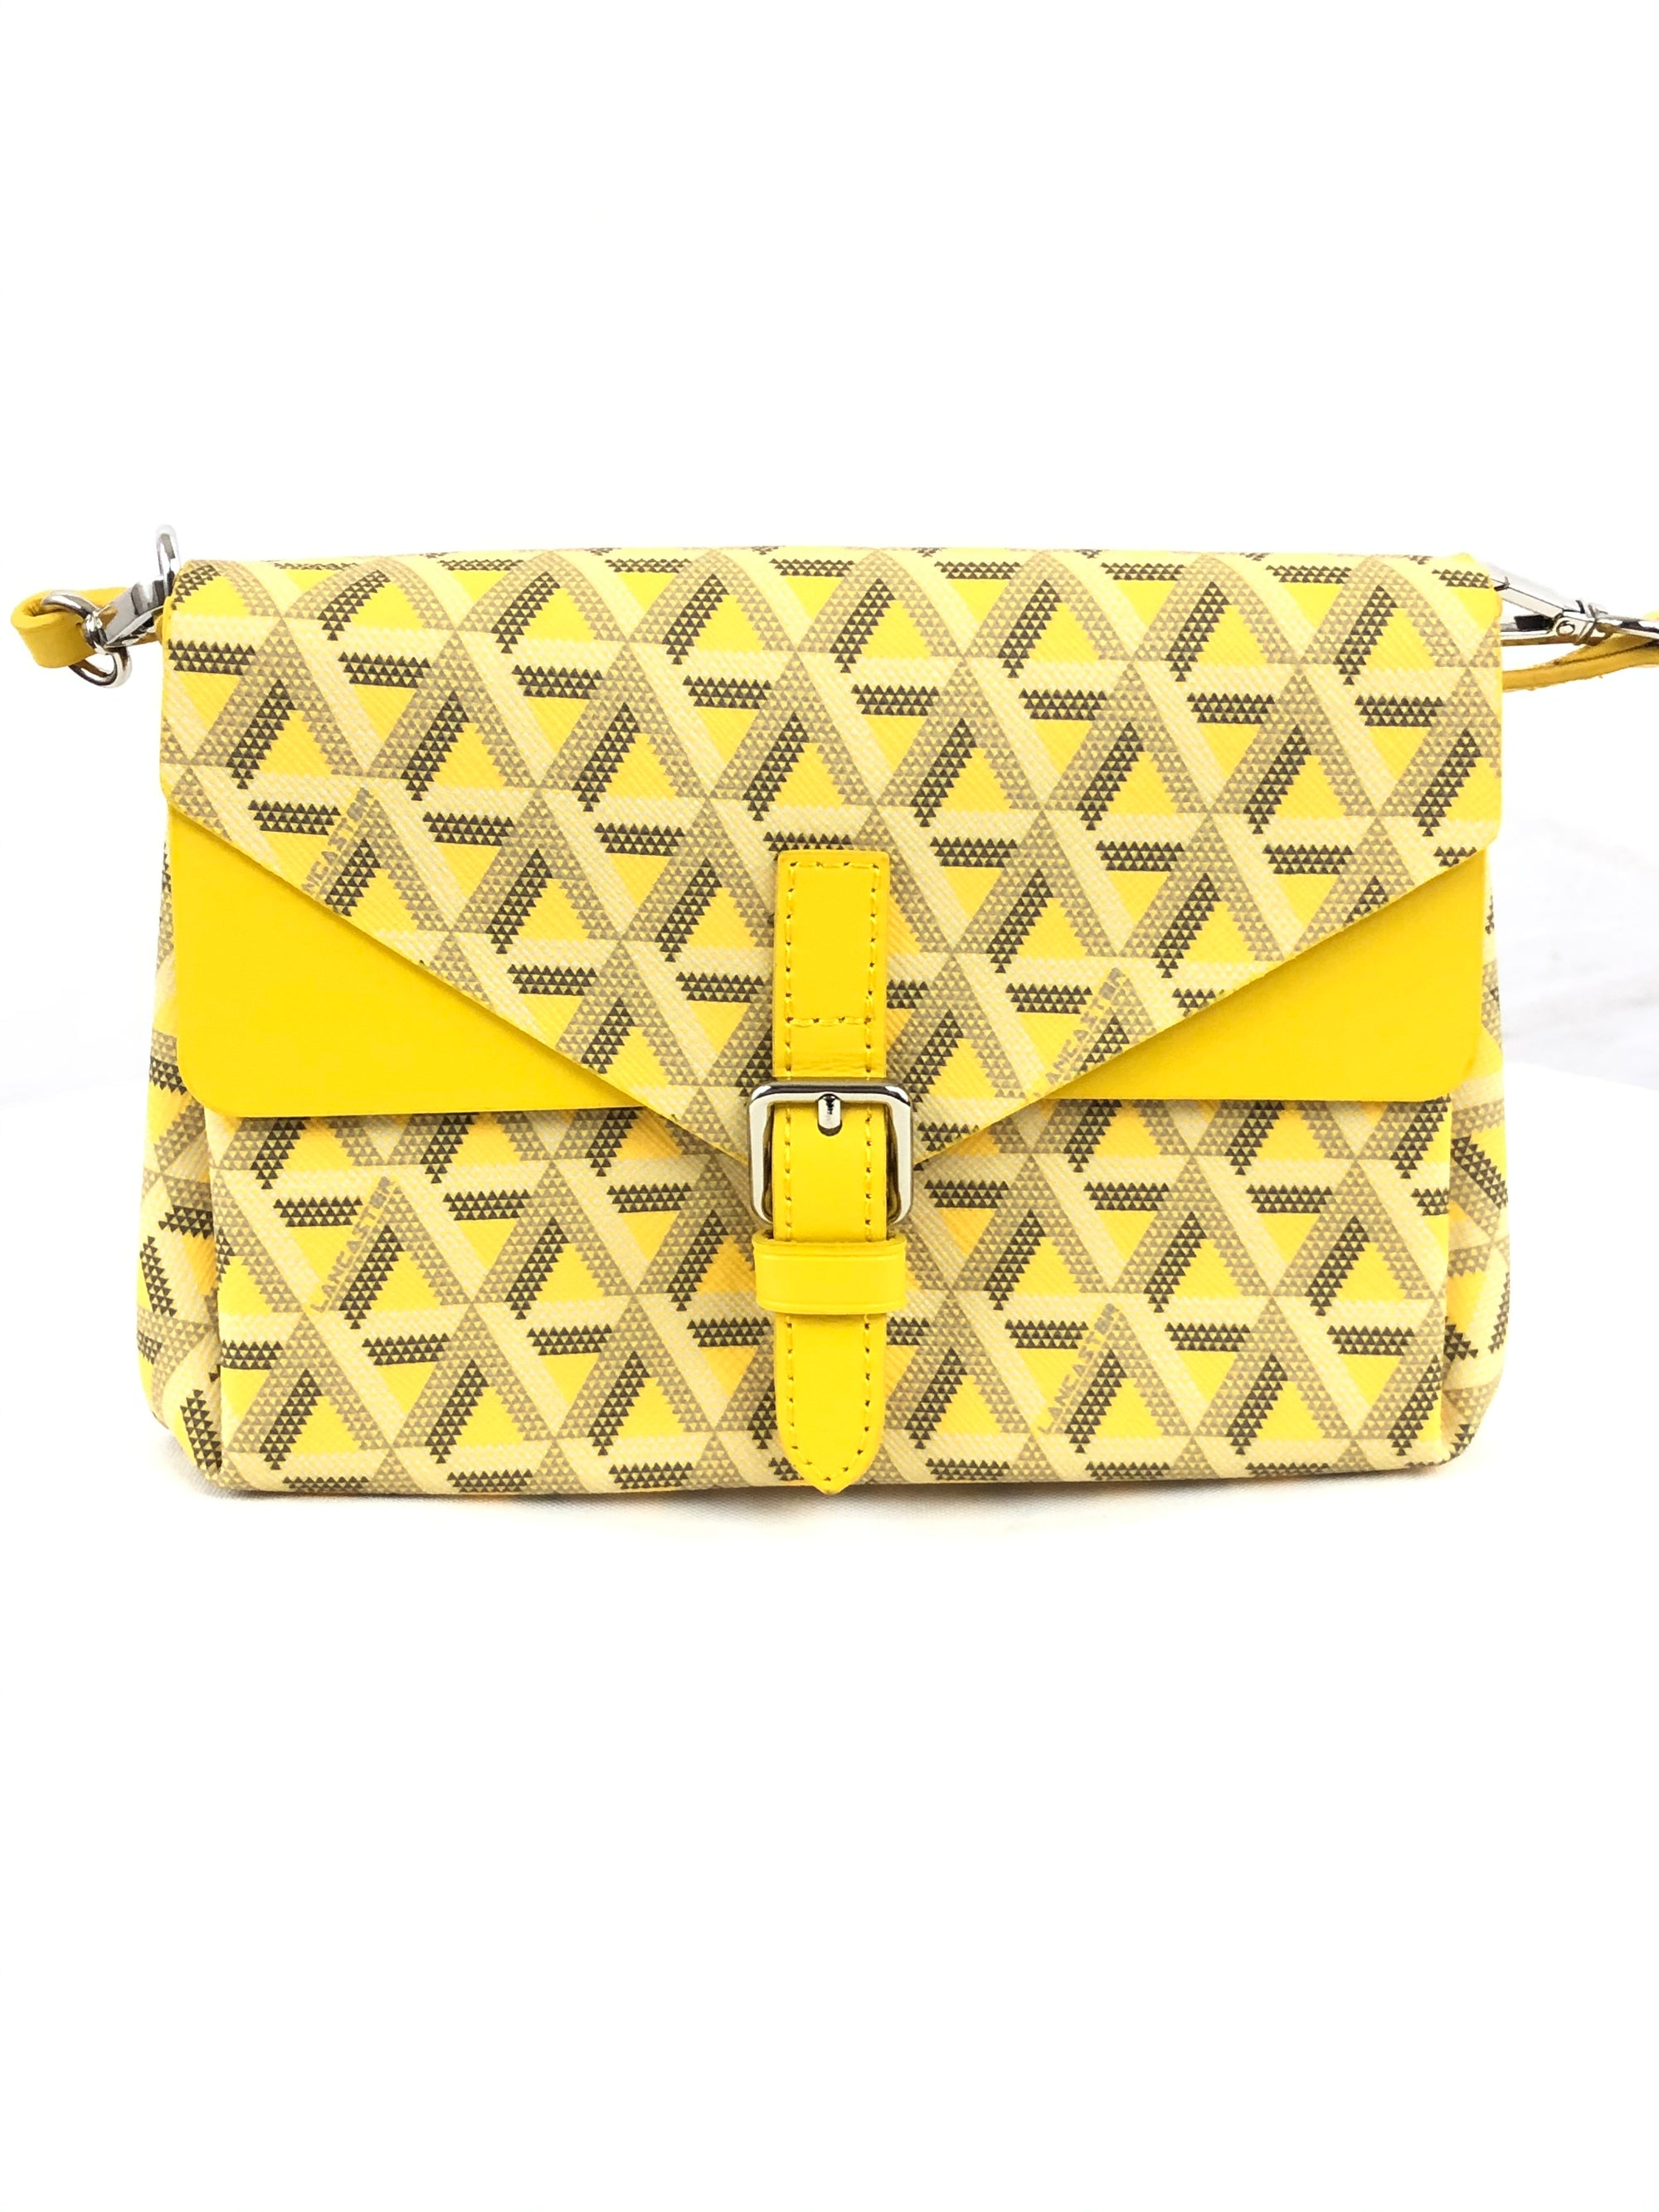 LANCASTER IKON SMALL CROSSBODY BAG - YELLOW